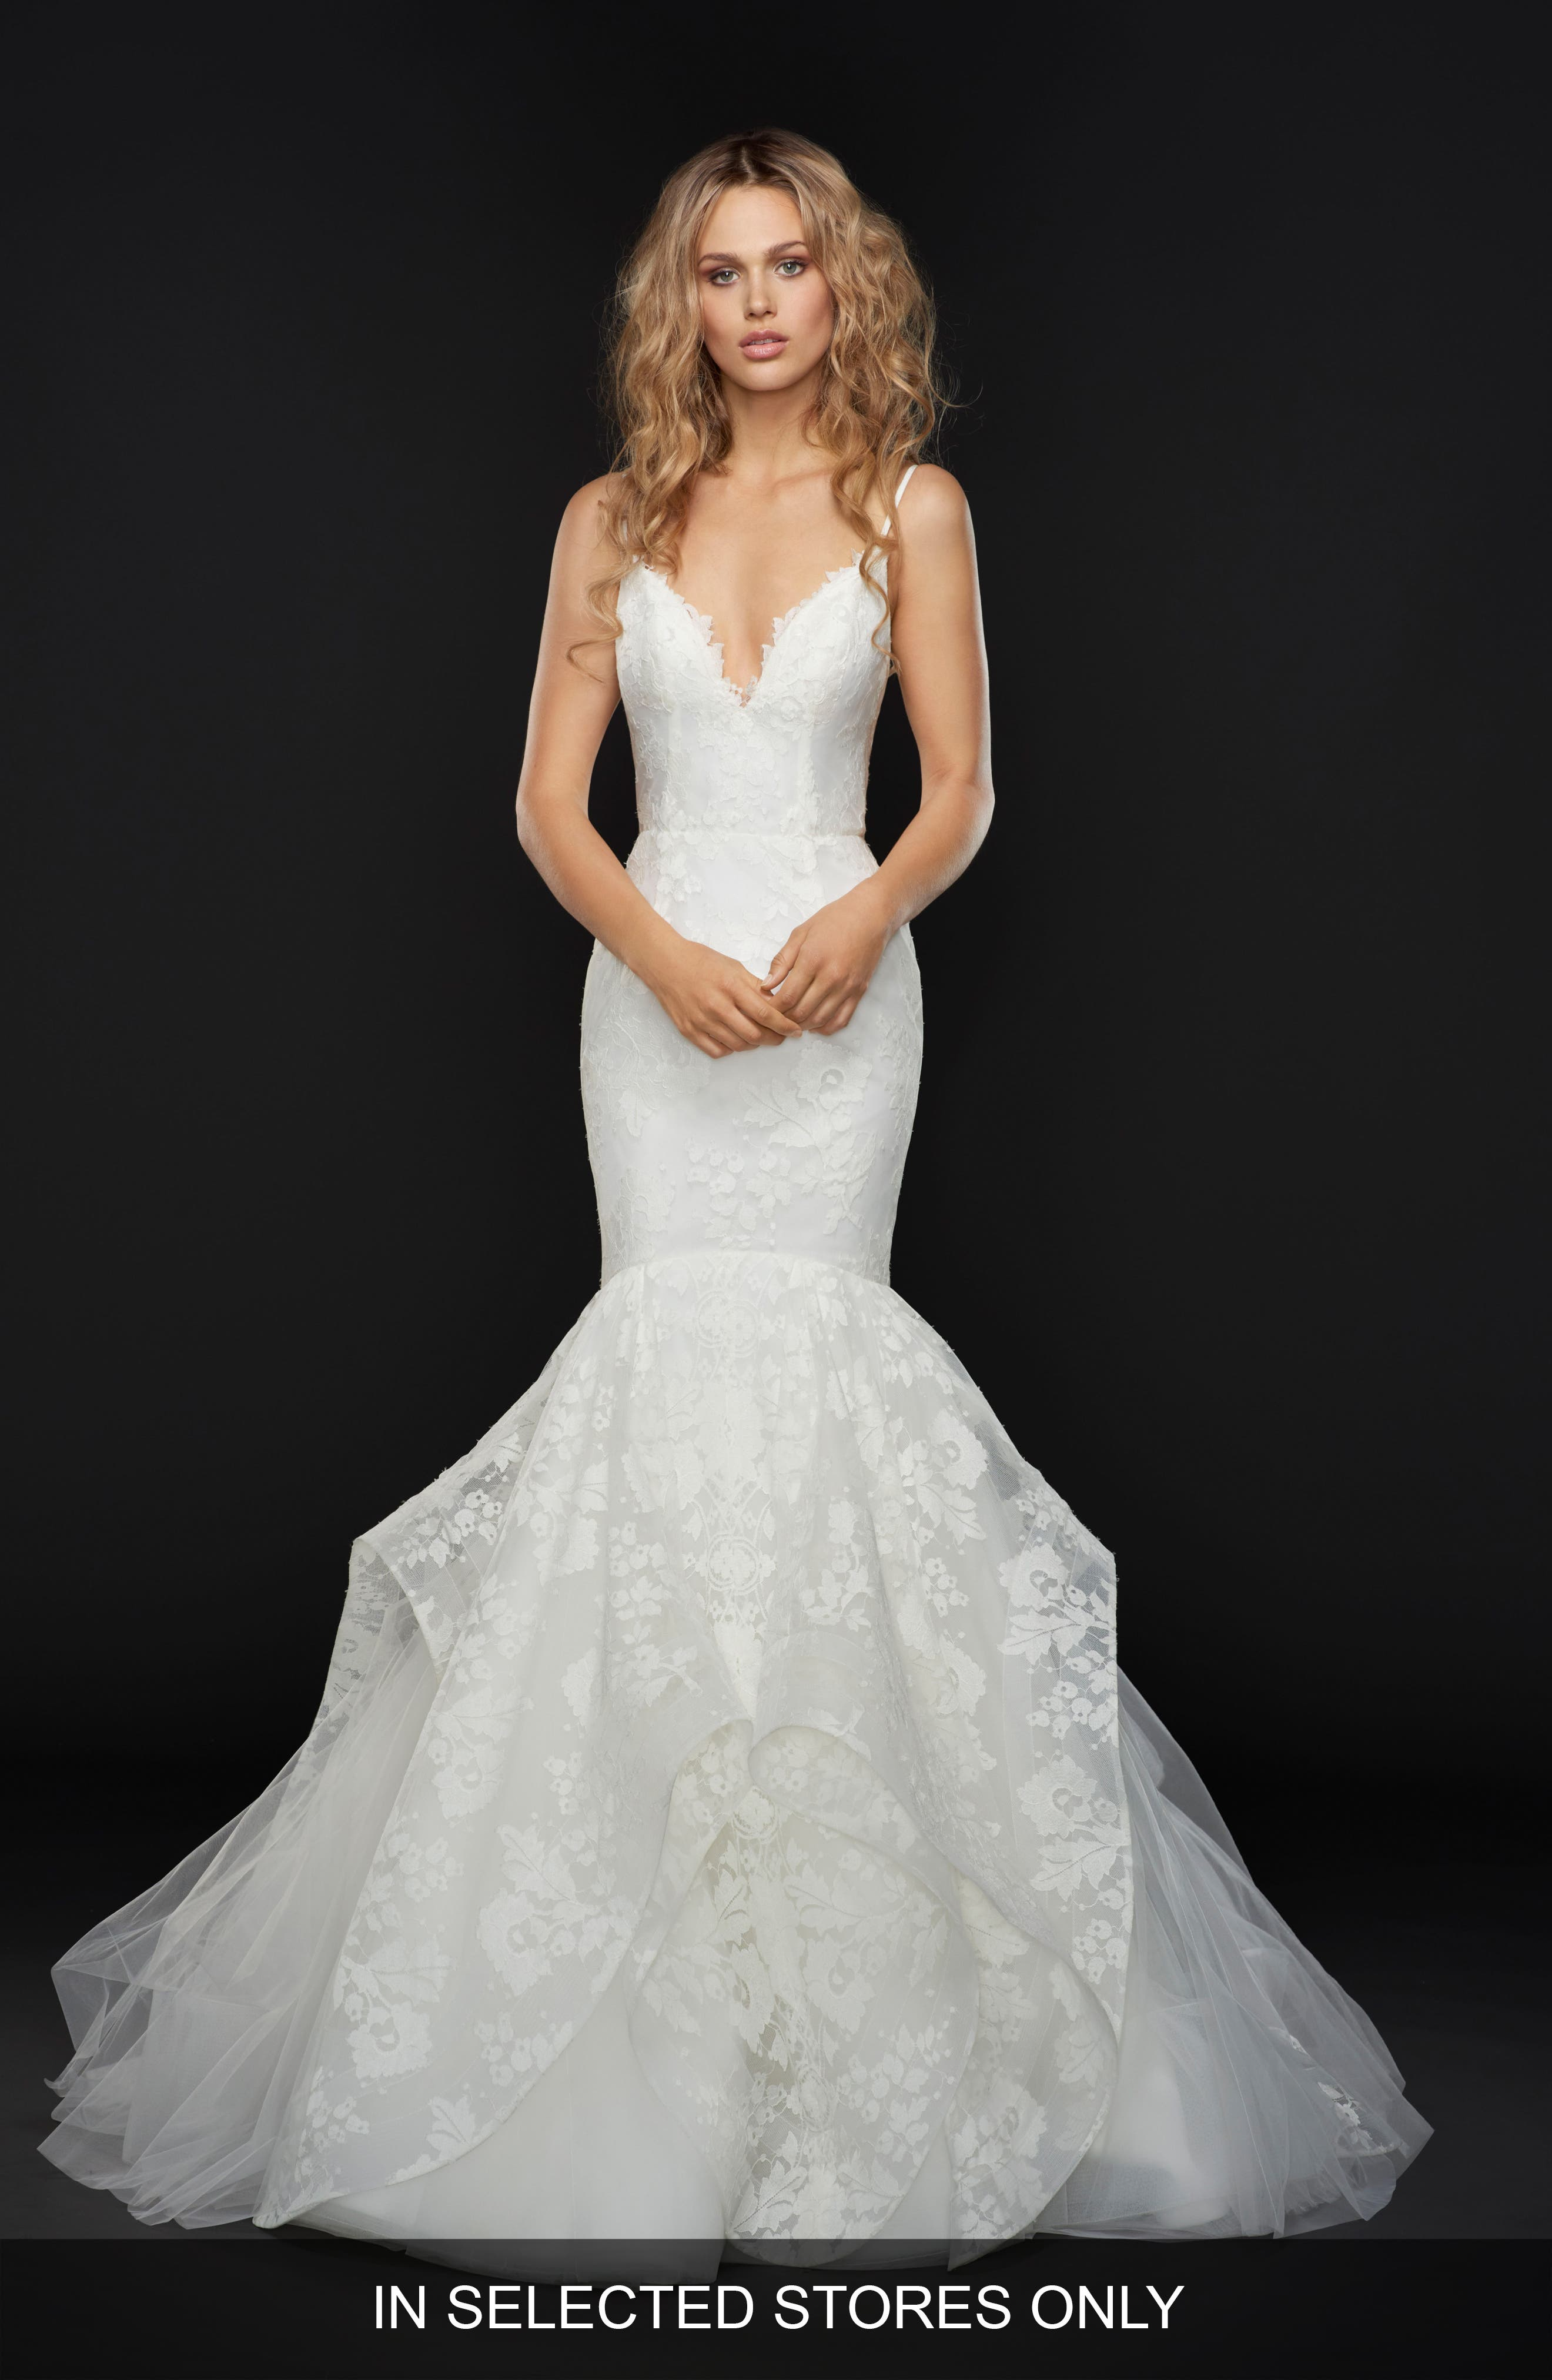 Park Spaghetti Strap Lace Mermaid Gown,                             Main thumbnail 1, color,                             IVORY